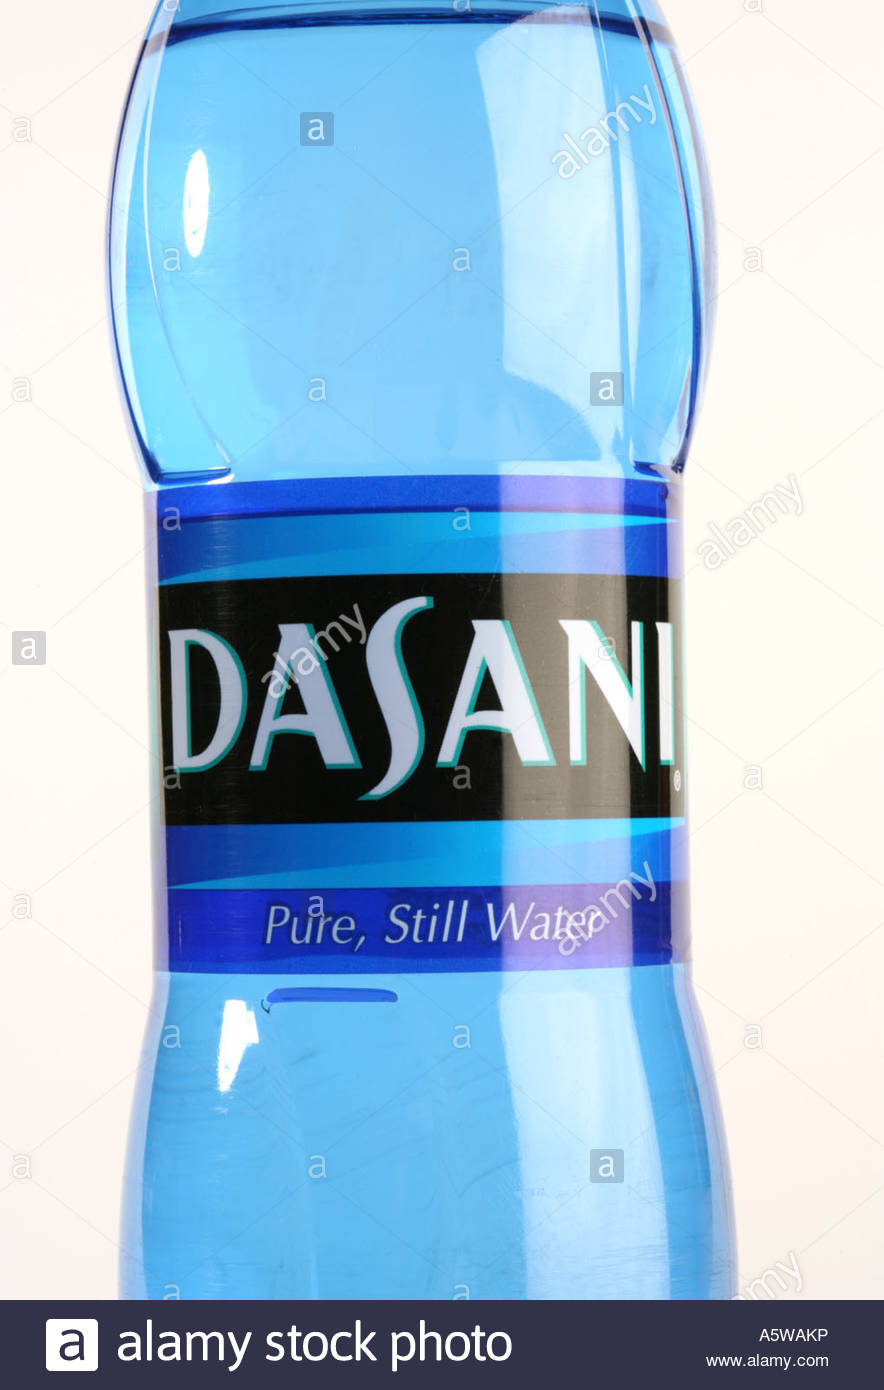 Dasani Stock Symbol Image collections   meaning of this symbol 884x1390